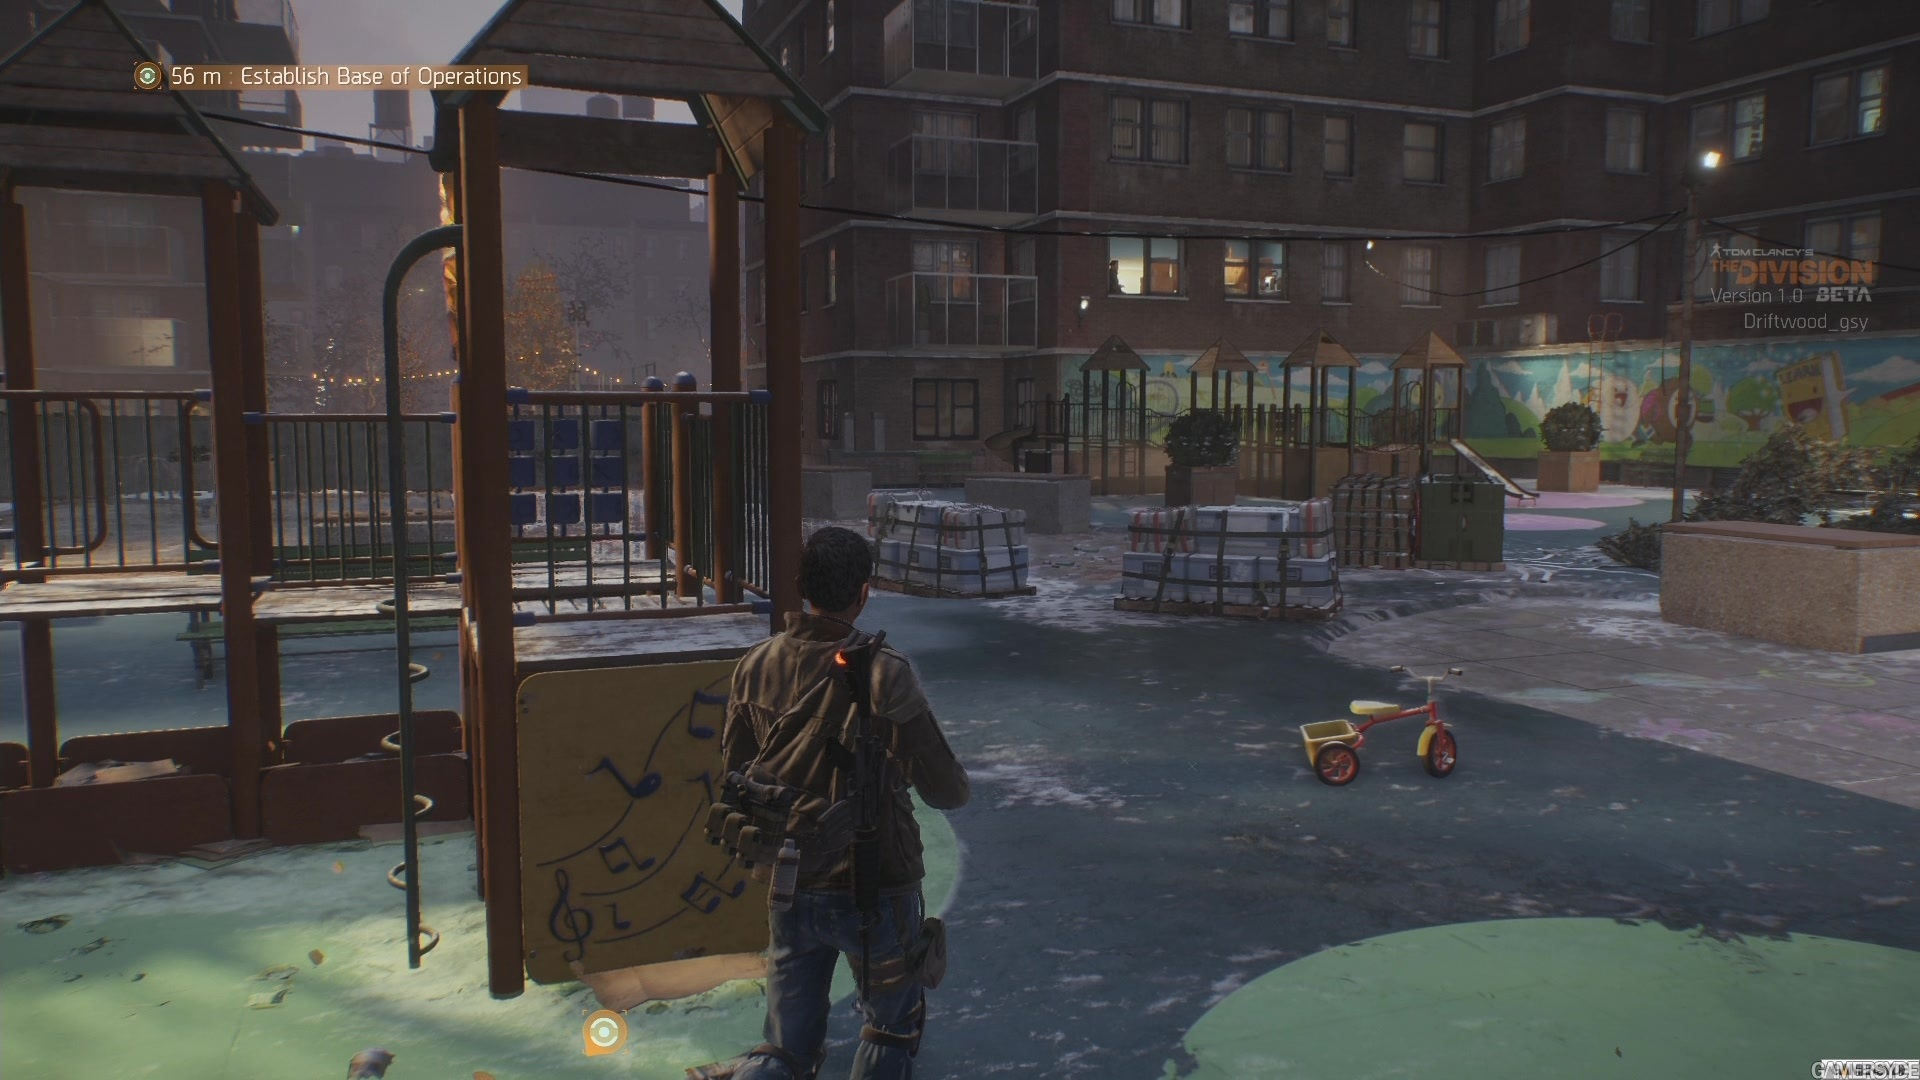 Tom Clancy's The Division - NYC #2 - PS4 beta